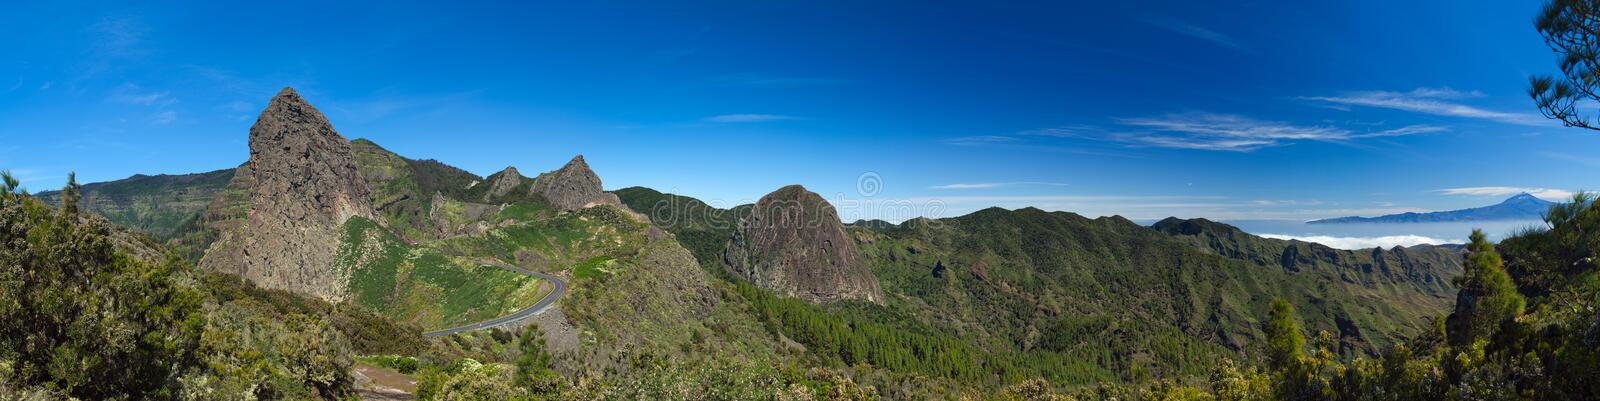 Inland La Gomera. Approach to Los Roques - Group of volcanic plugs in the middle of the island royalty free stock images